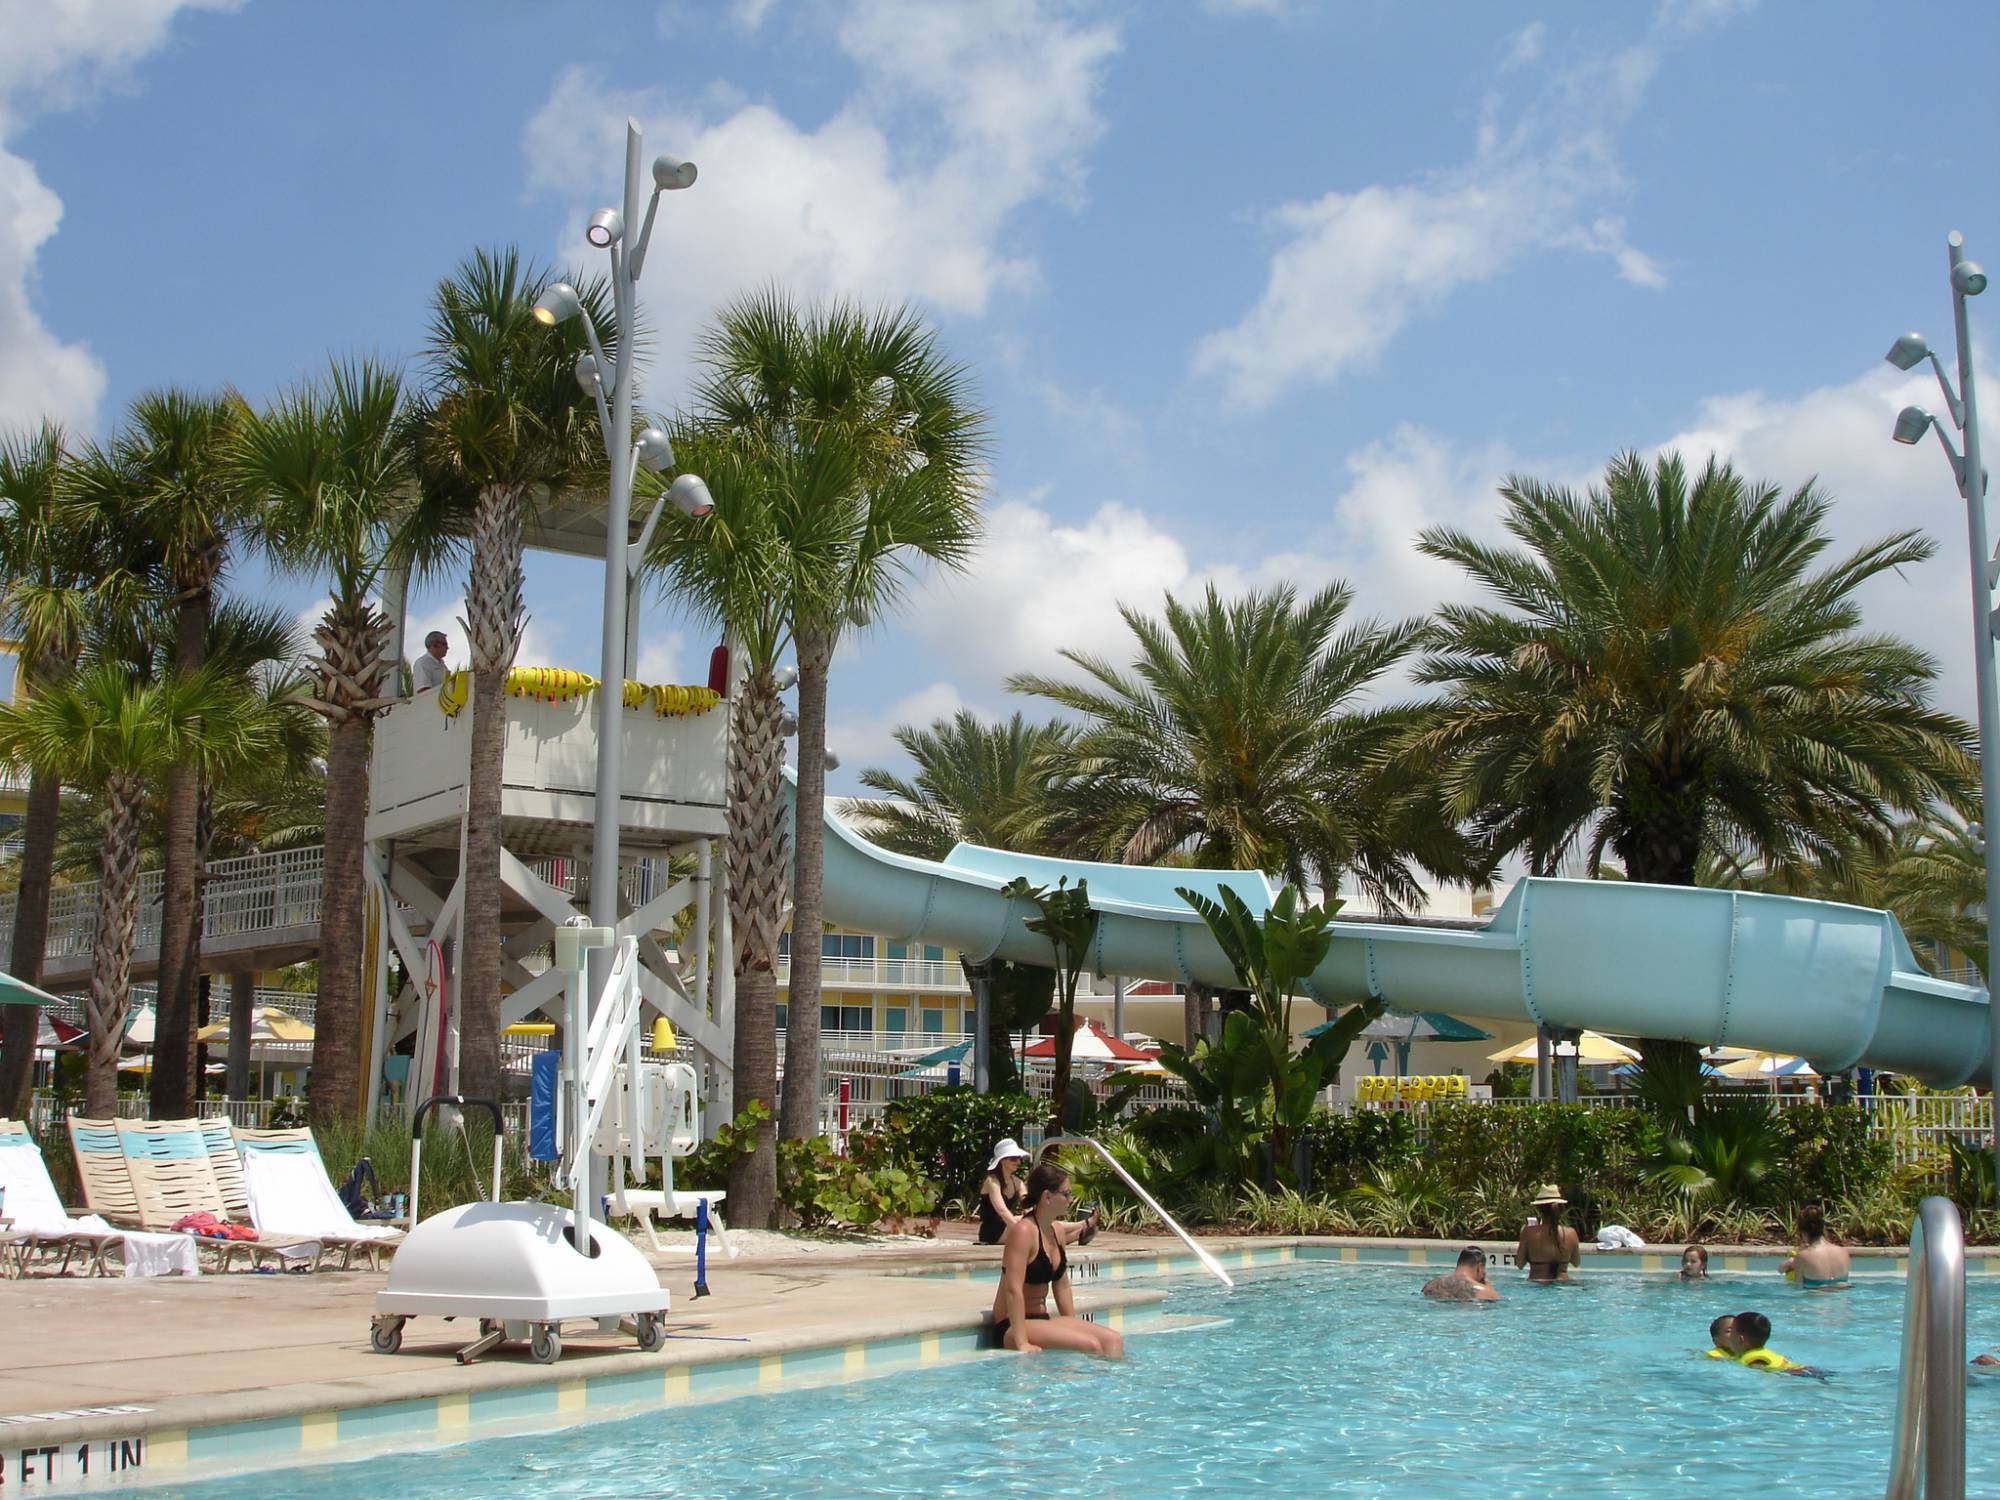 Enjoy a retro vacation at Universal Orlando's Cabana Bay Beach Resort |PassPorter.com